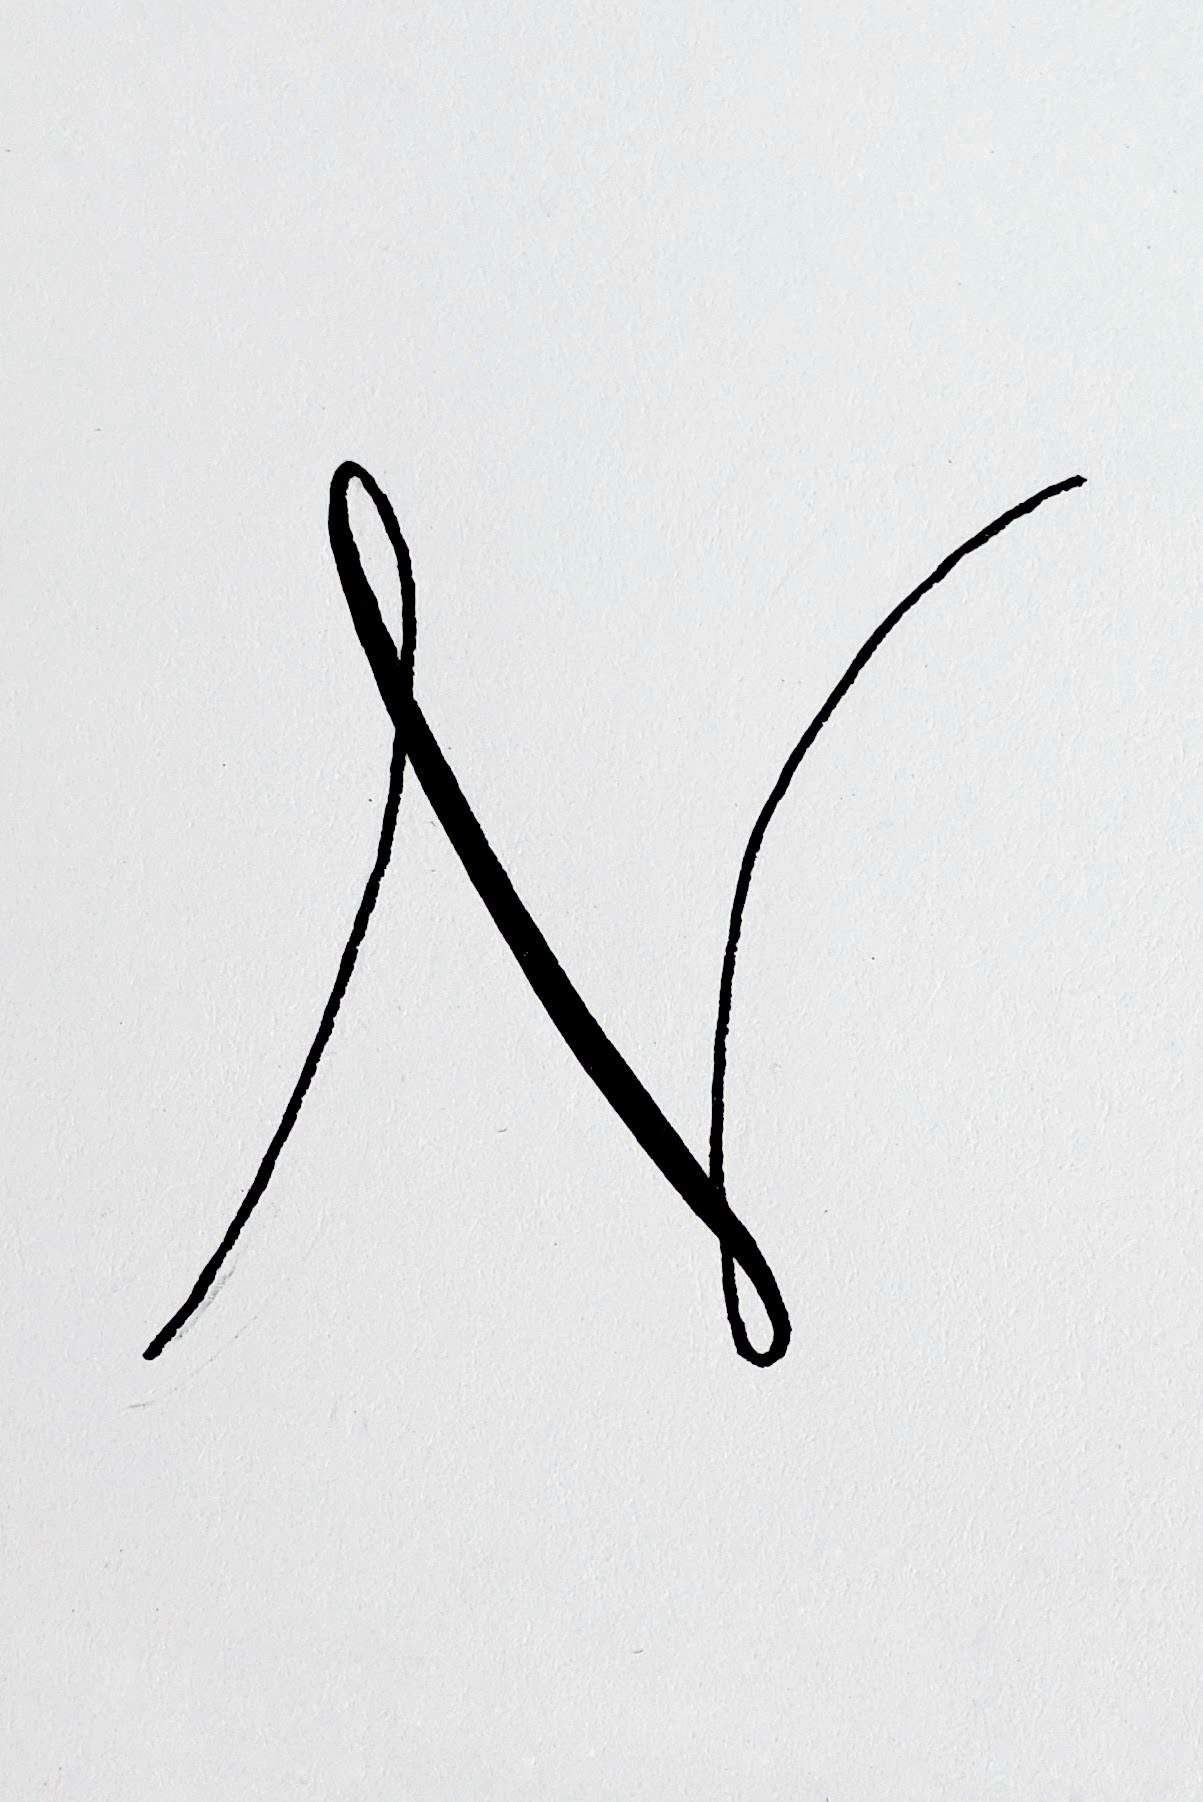 Letter N In Different Fonts : letter, different, fonts, Letter, Things, Night, Style, Study, Monogram, Tattoo,, Lettering, Fonts,, Tattoo